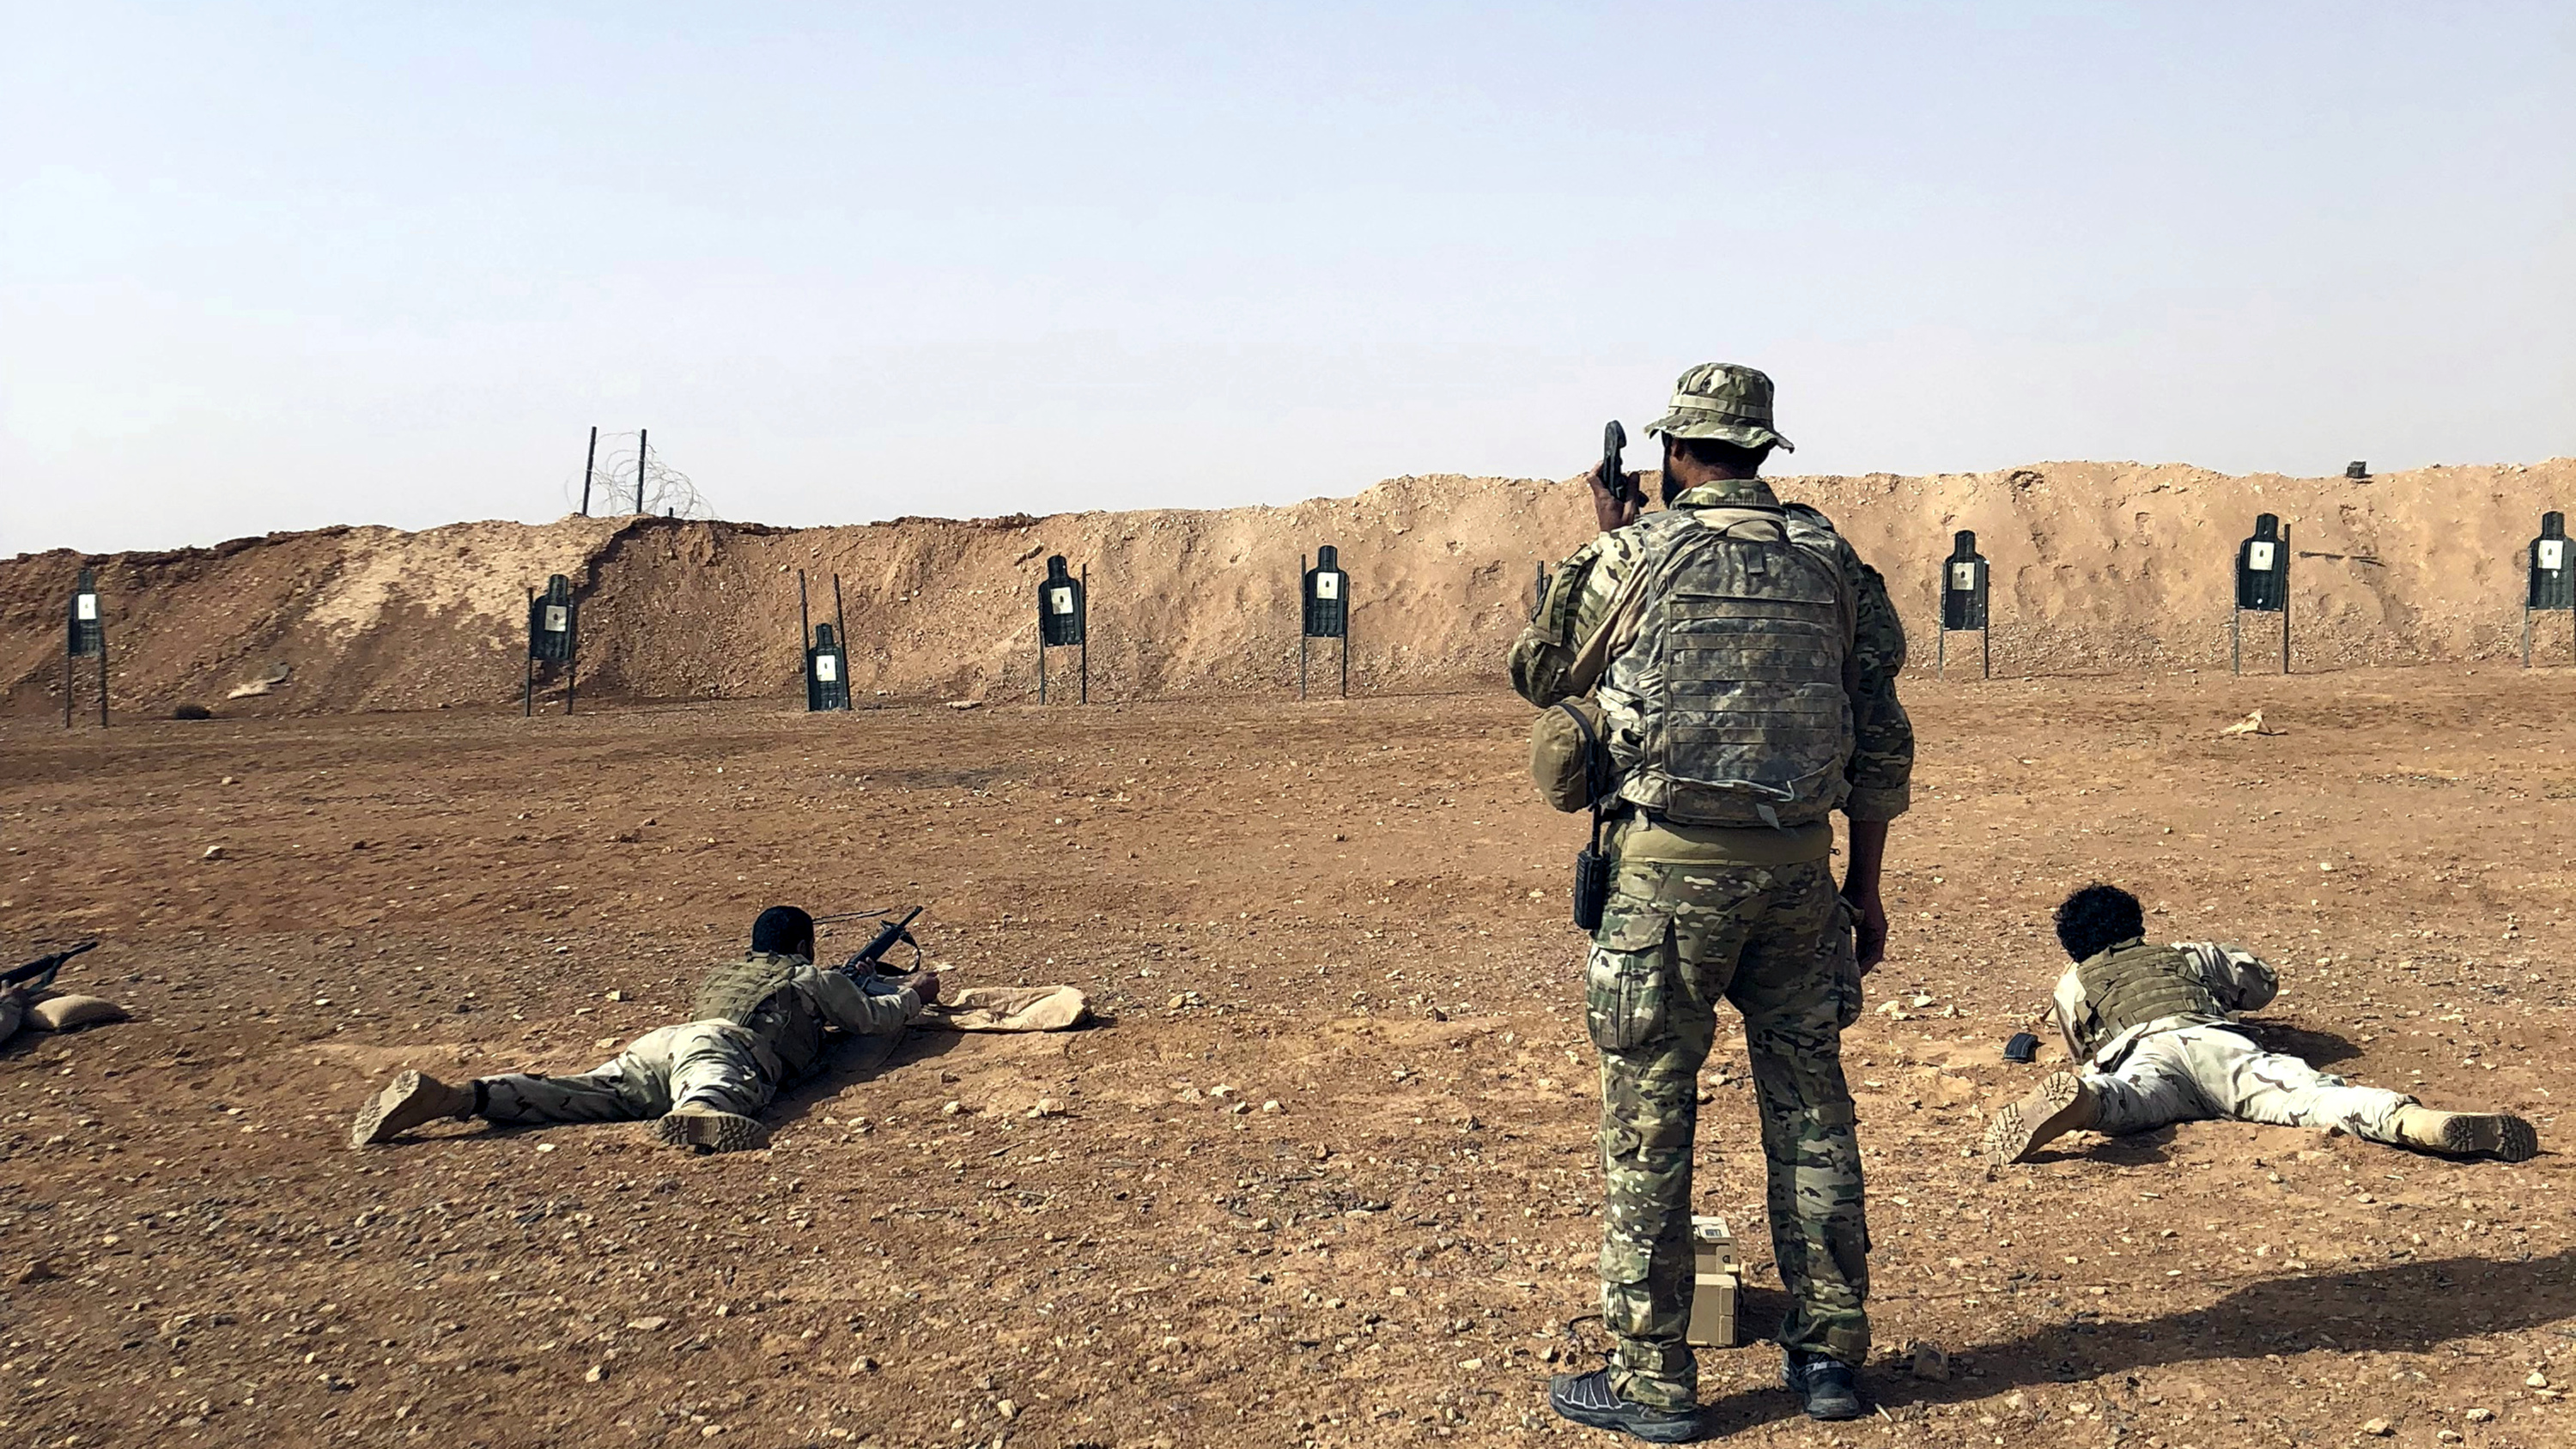 Members of the Maghawir al-Thawra Syrian opposition group receive firearms training from U.S. Army Special Forces soldiers at the al-Tanf military outpost in southern Syria on Monday, Oct. 22, 2018.